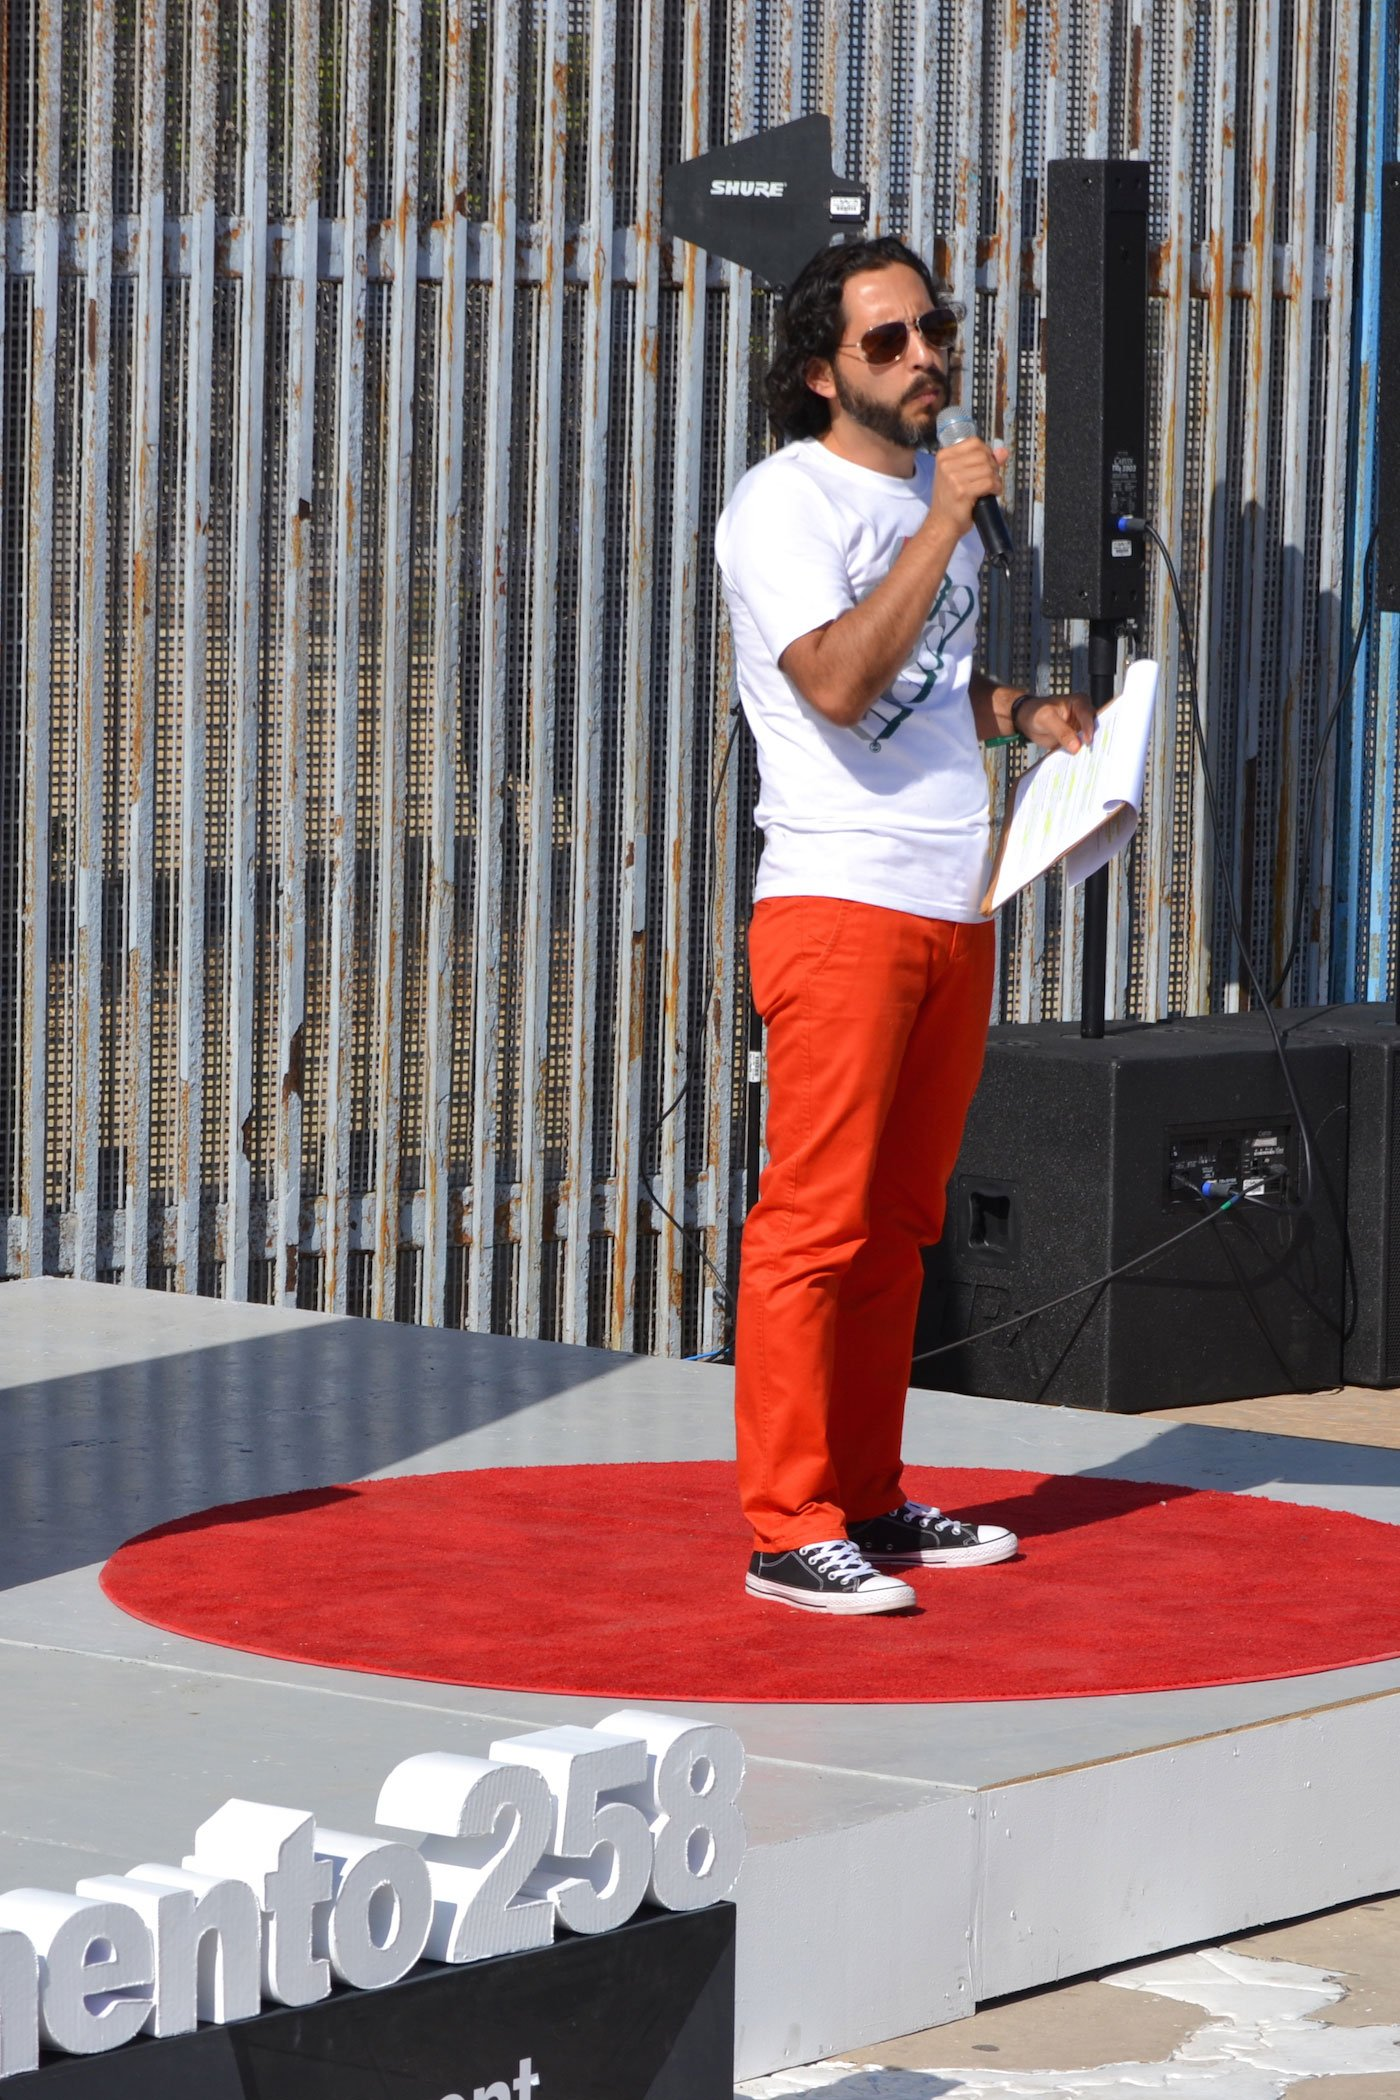 Jorge Francisco Sánchez at TEDxMonumento258